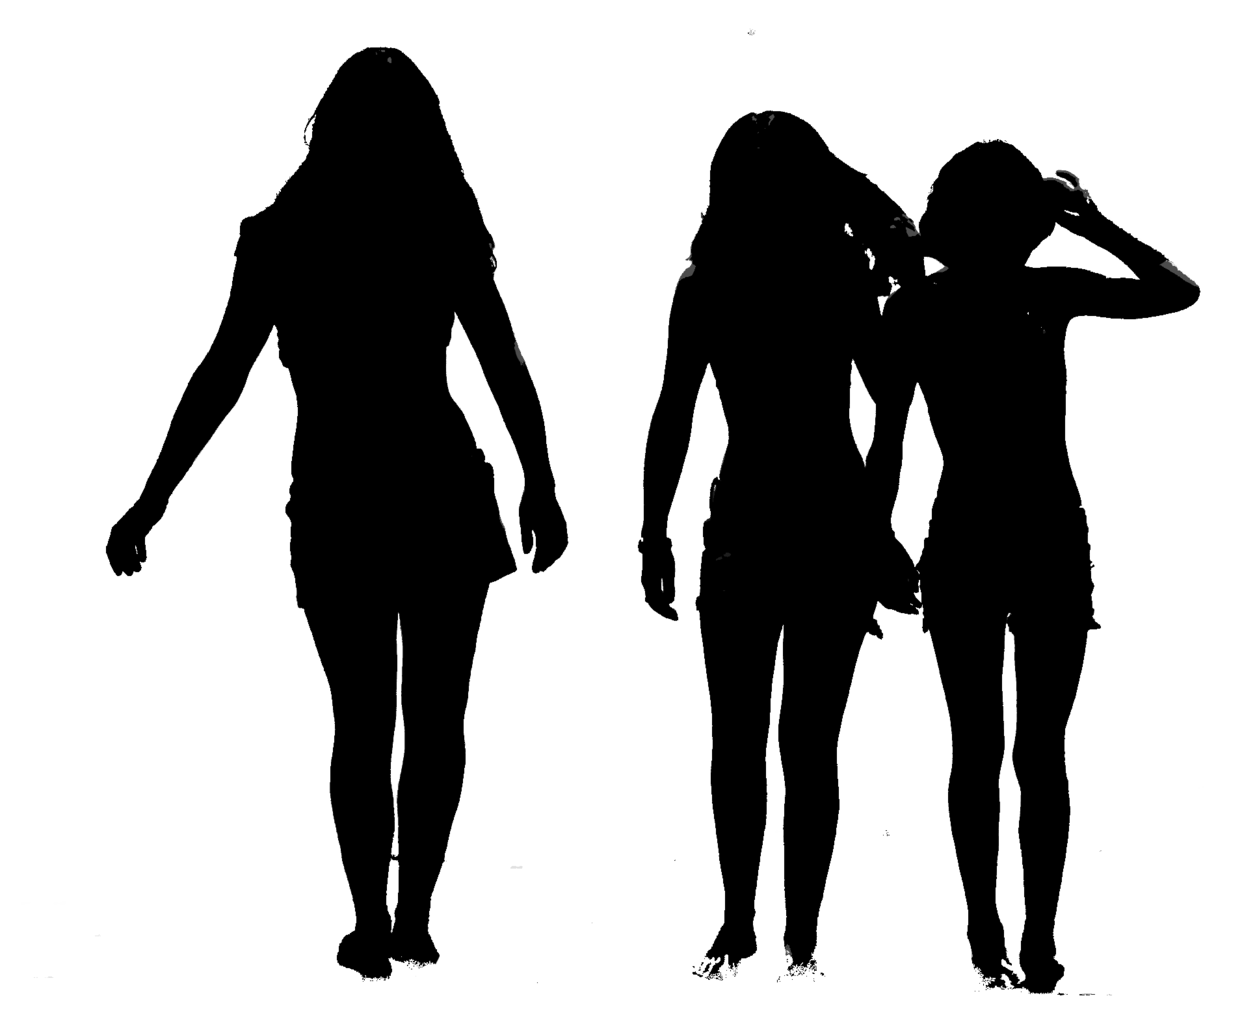 Silhouette Paintings Of People File Silhouette Of Trio Png Wikimedia Commons